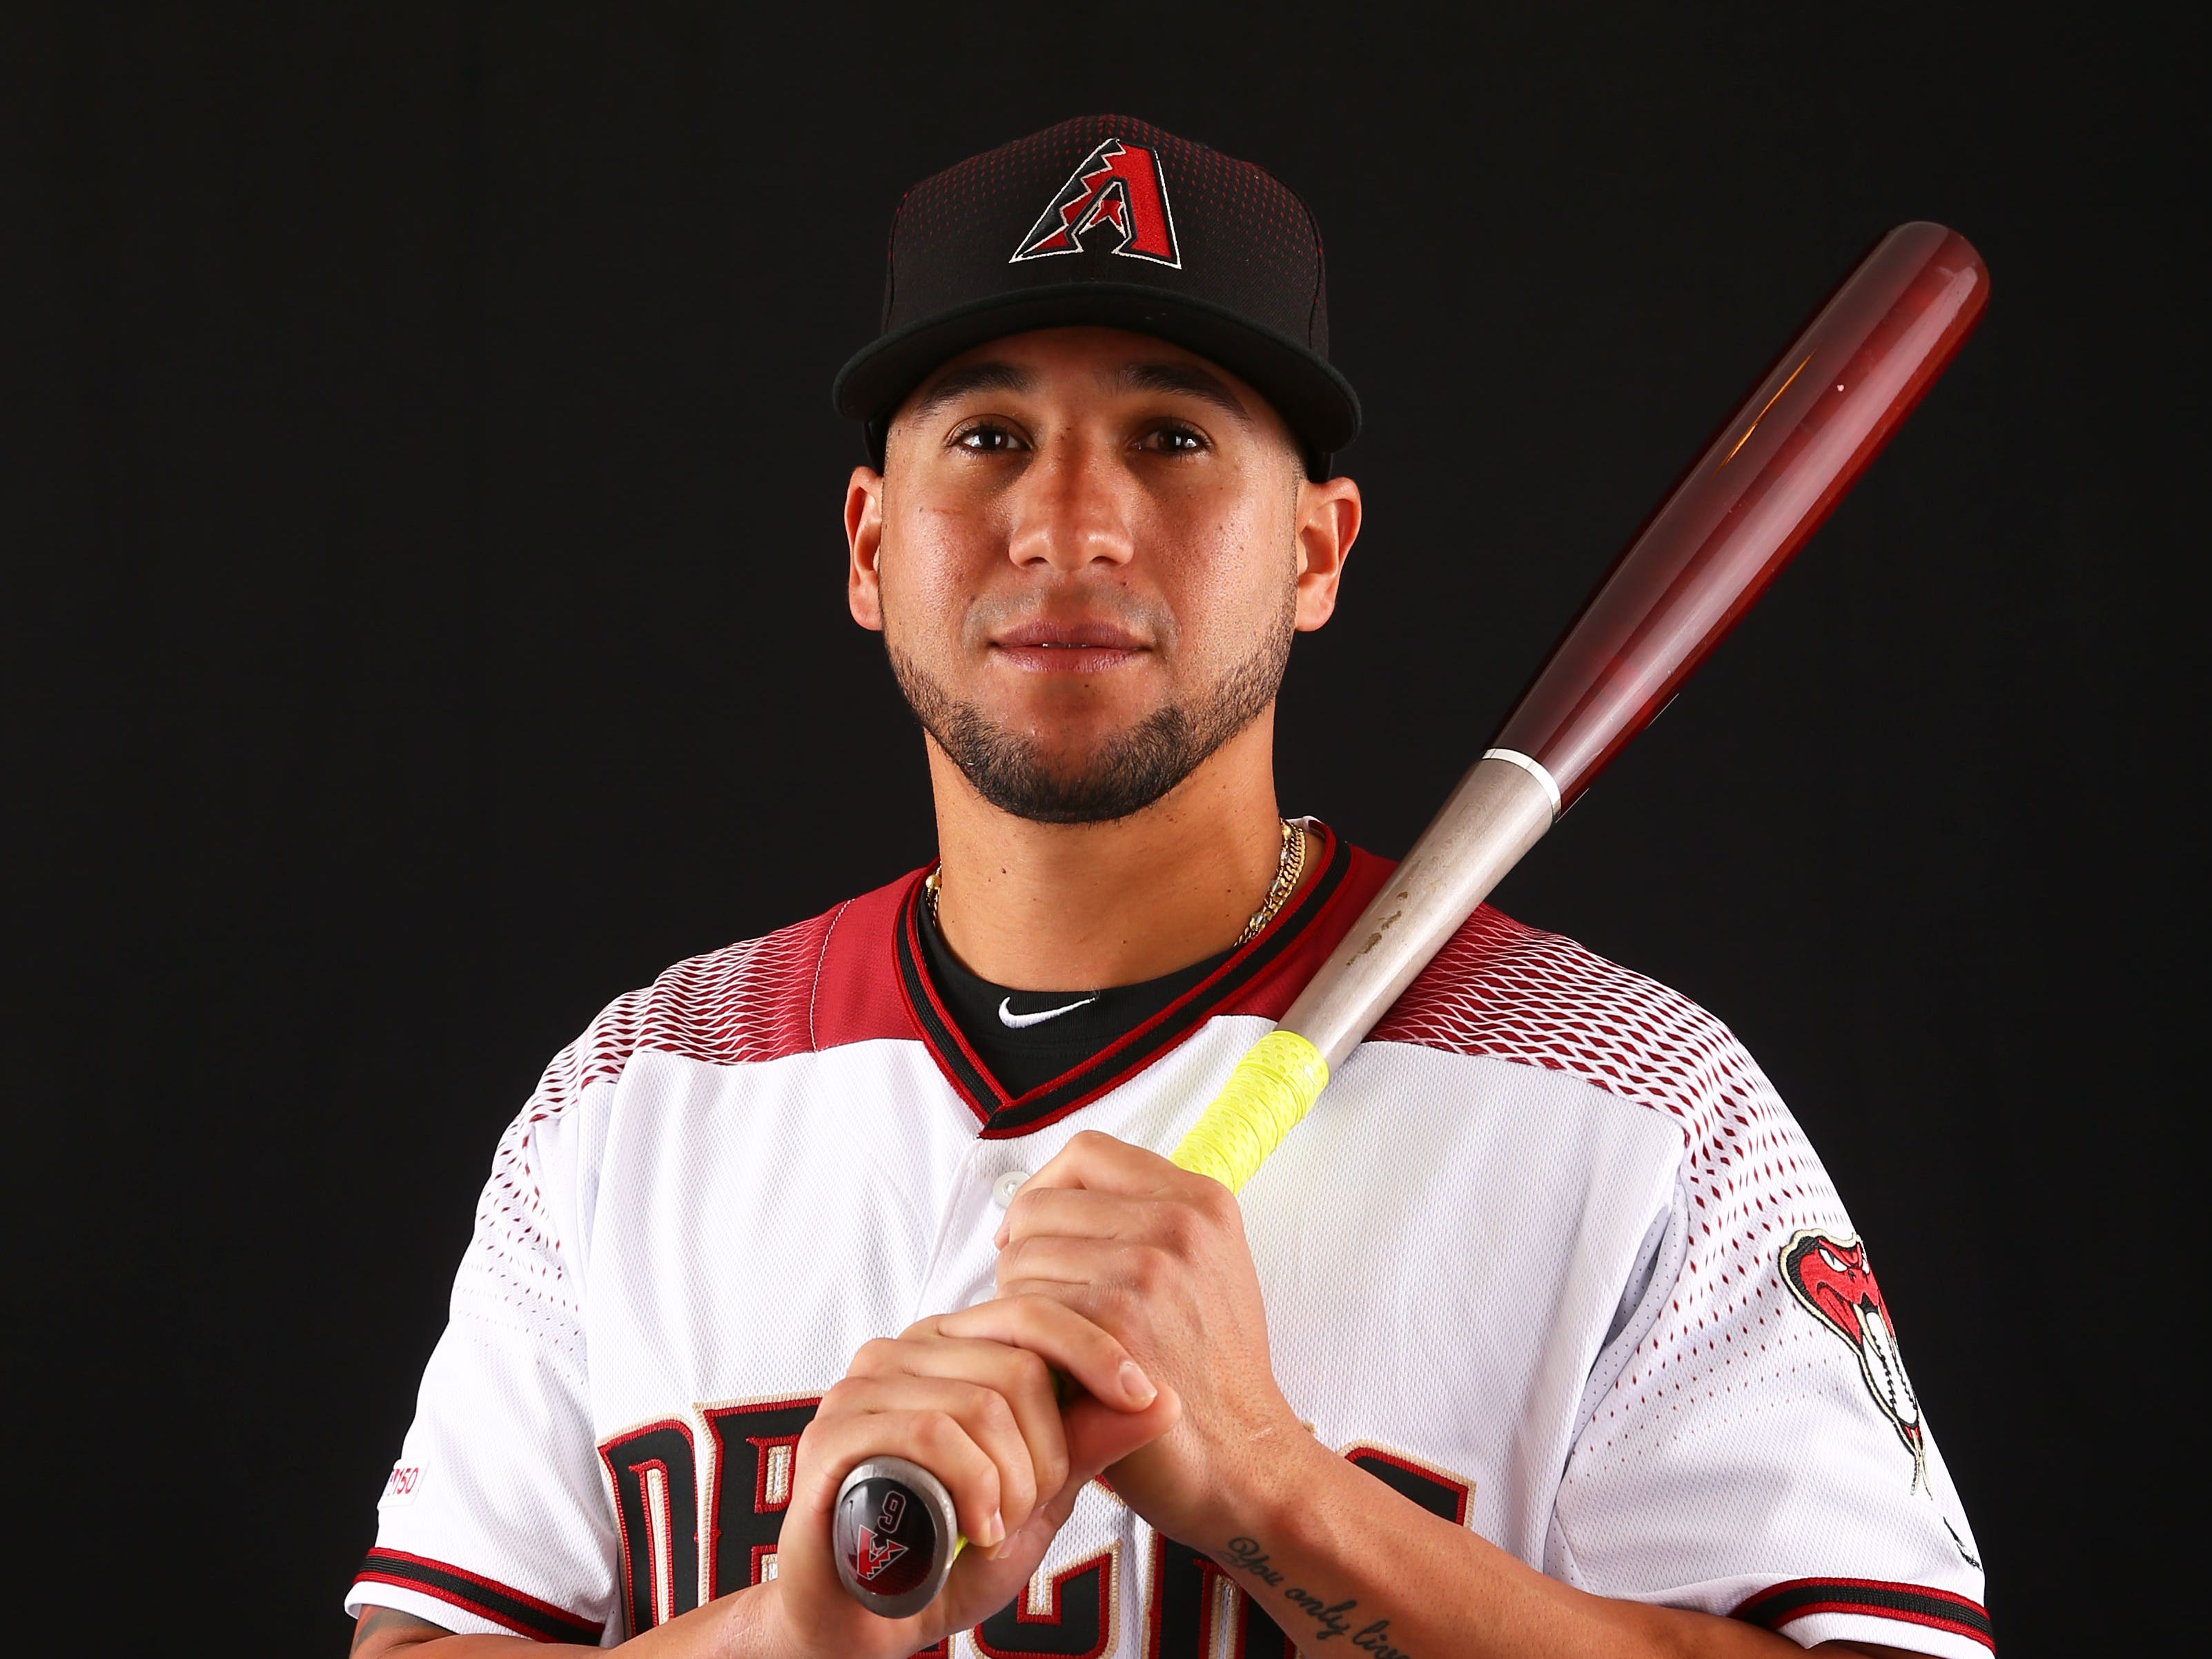 David Peralta of the Arizona Diamondbacks poses for a photo during the annual Spring Training Photo Day on Feb. 20 at Salt River Fields in Scottsdale, Ariz.